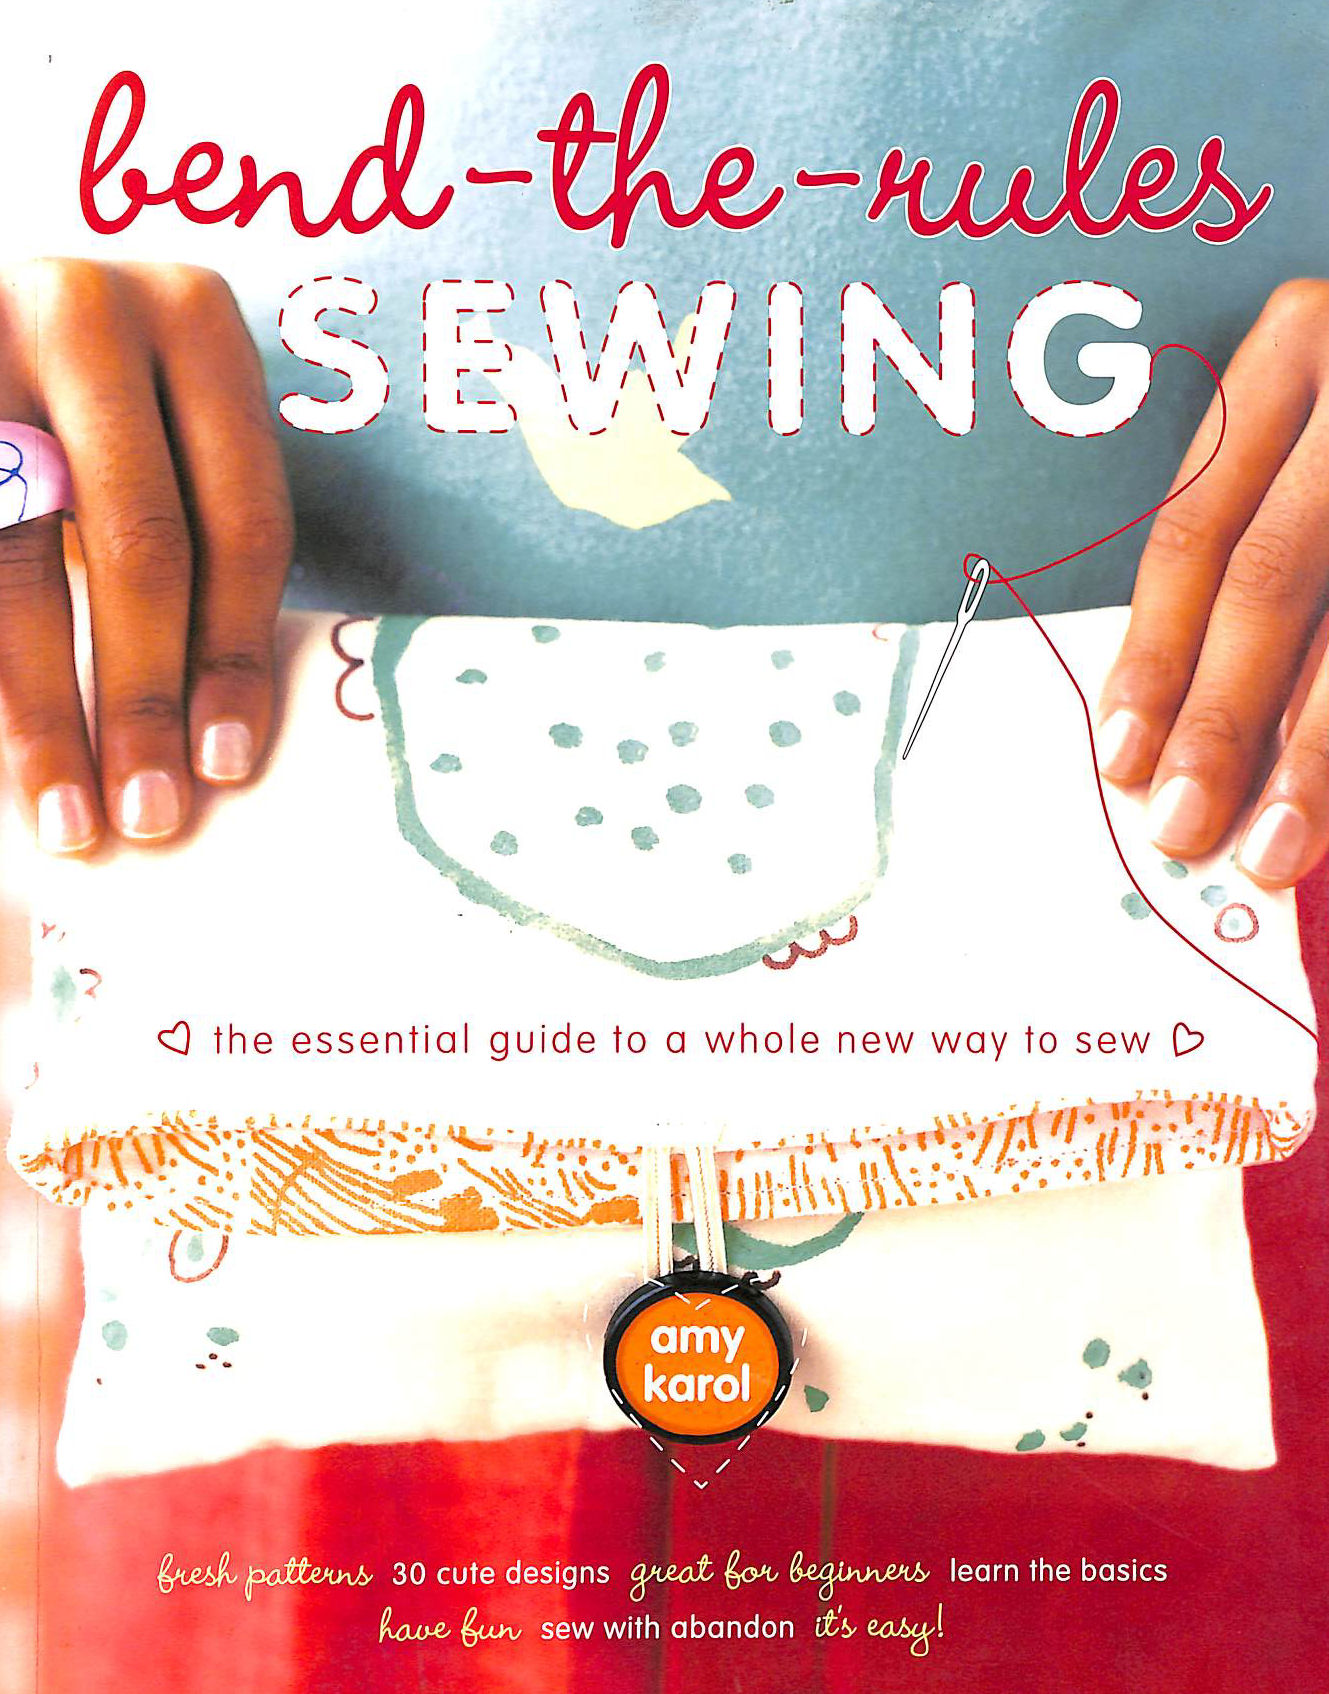 Image for Bend-the-Rules Sewing